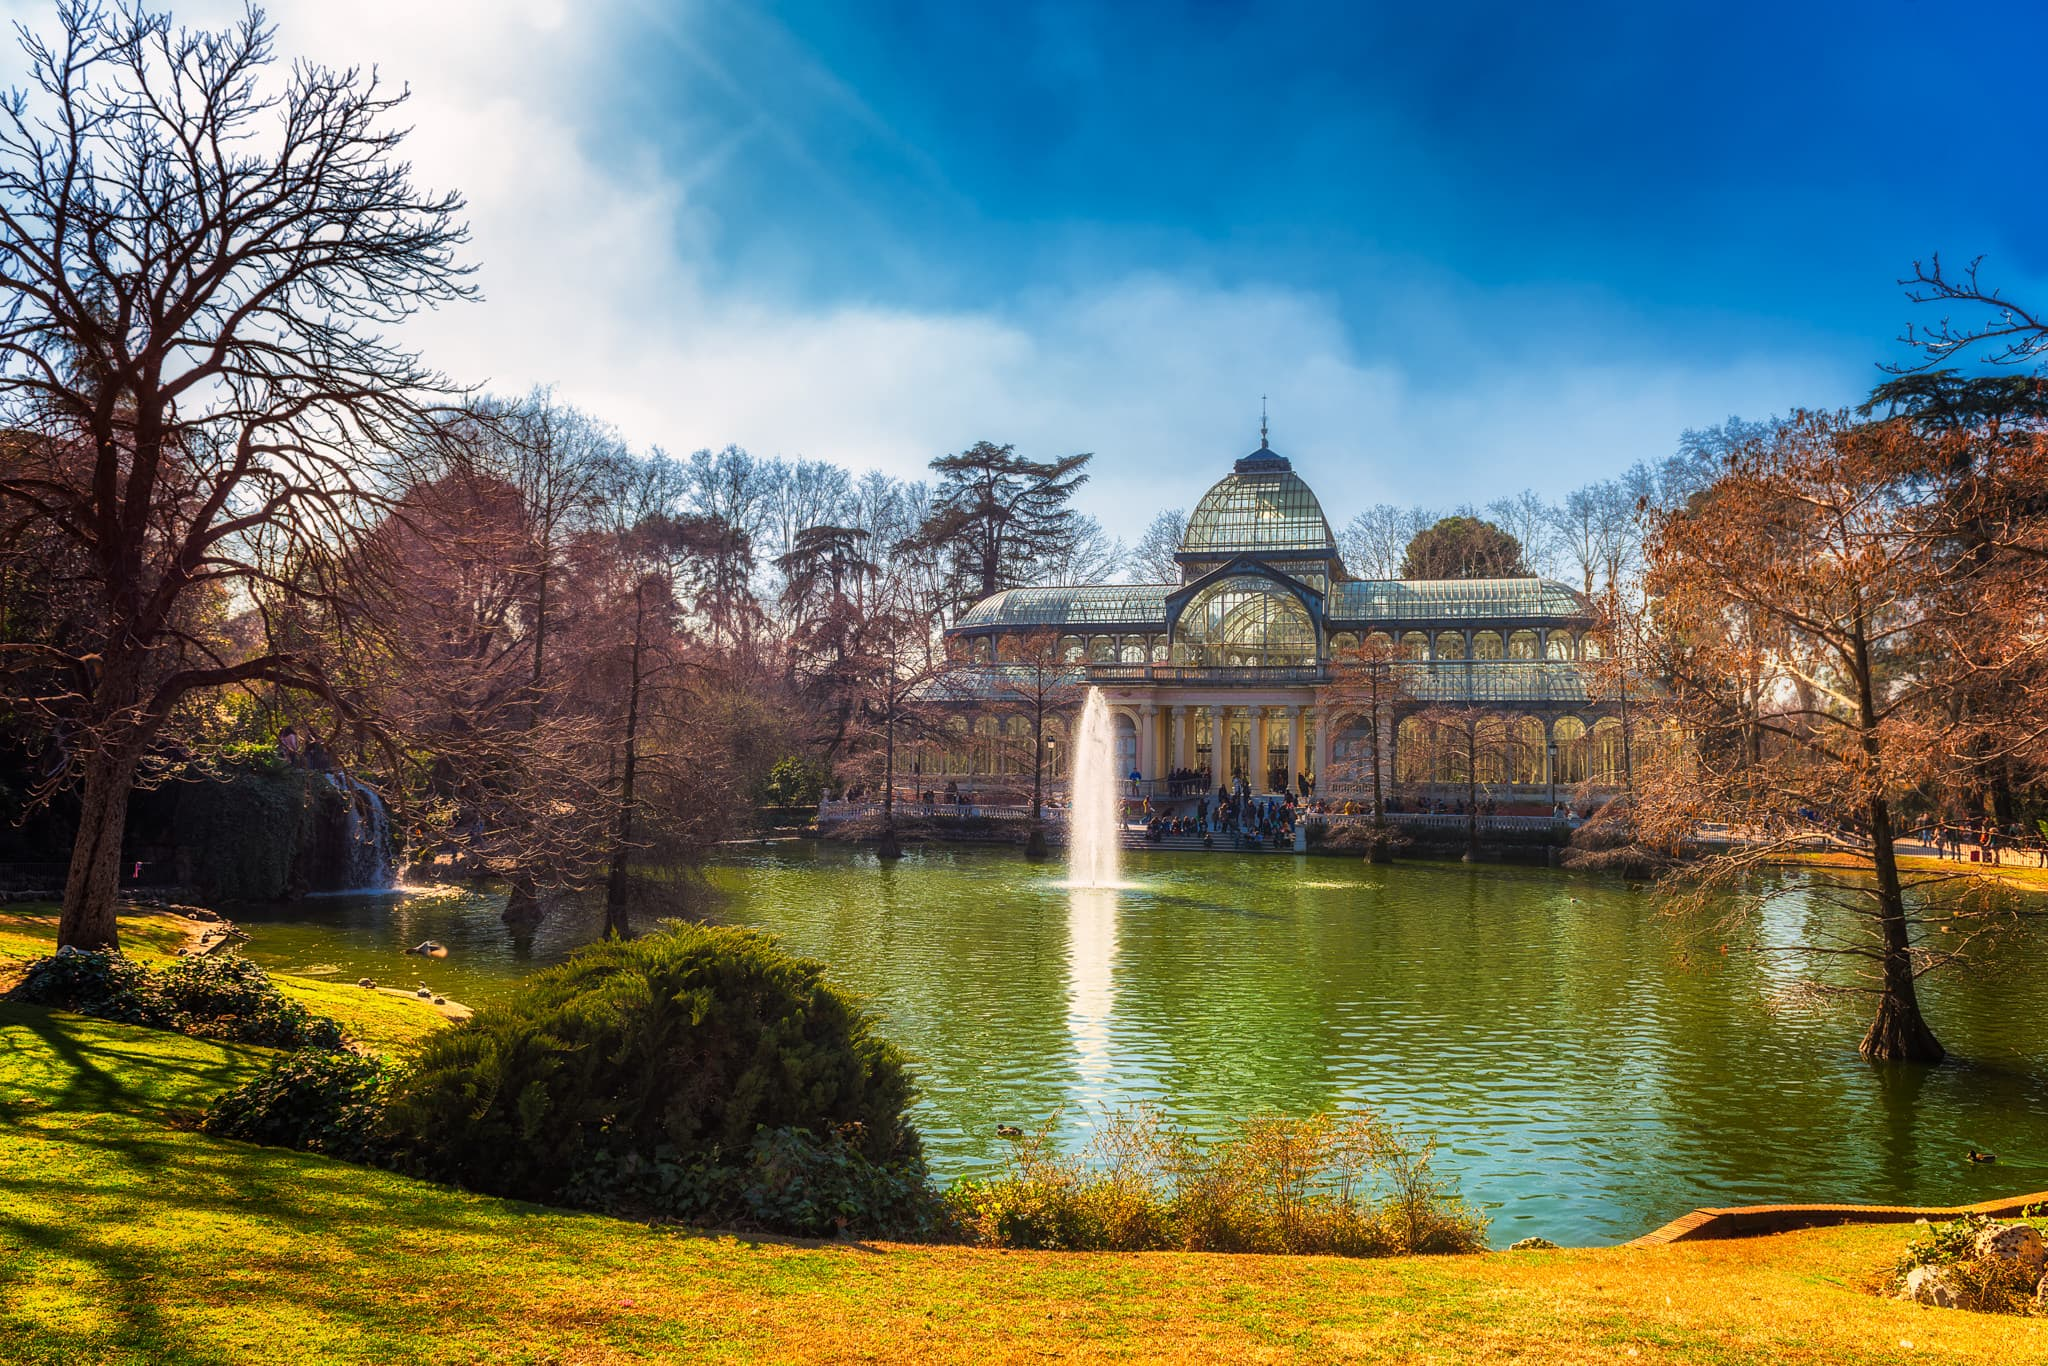 Photograph of Crystal Palace in Buen Retiro Park in Madrid with the pond in foreground. Photo was taken during a sunny day in winter.